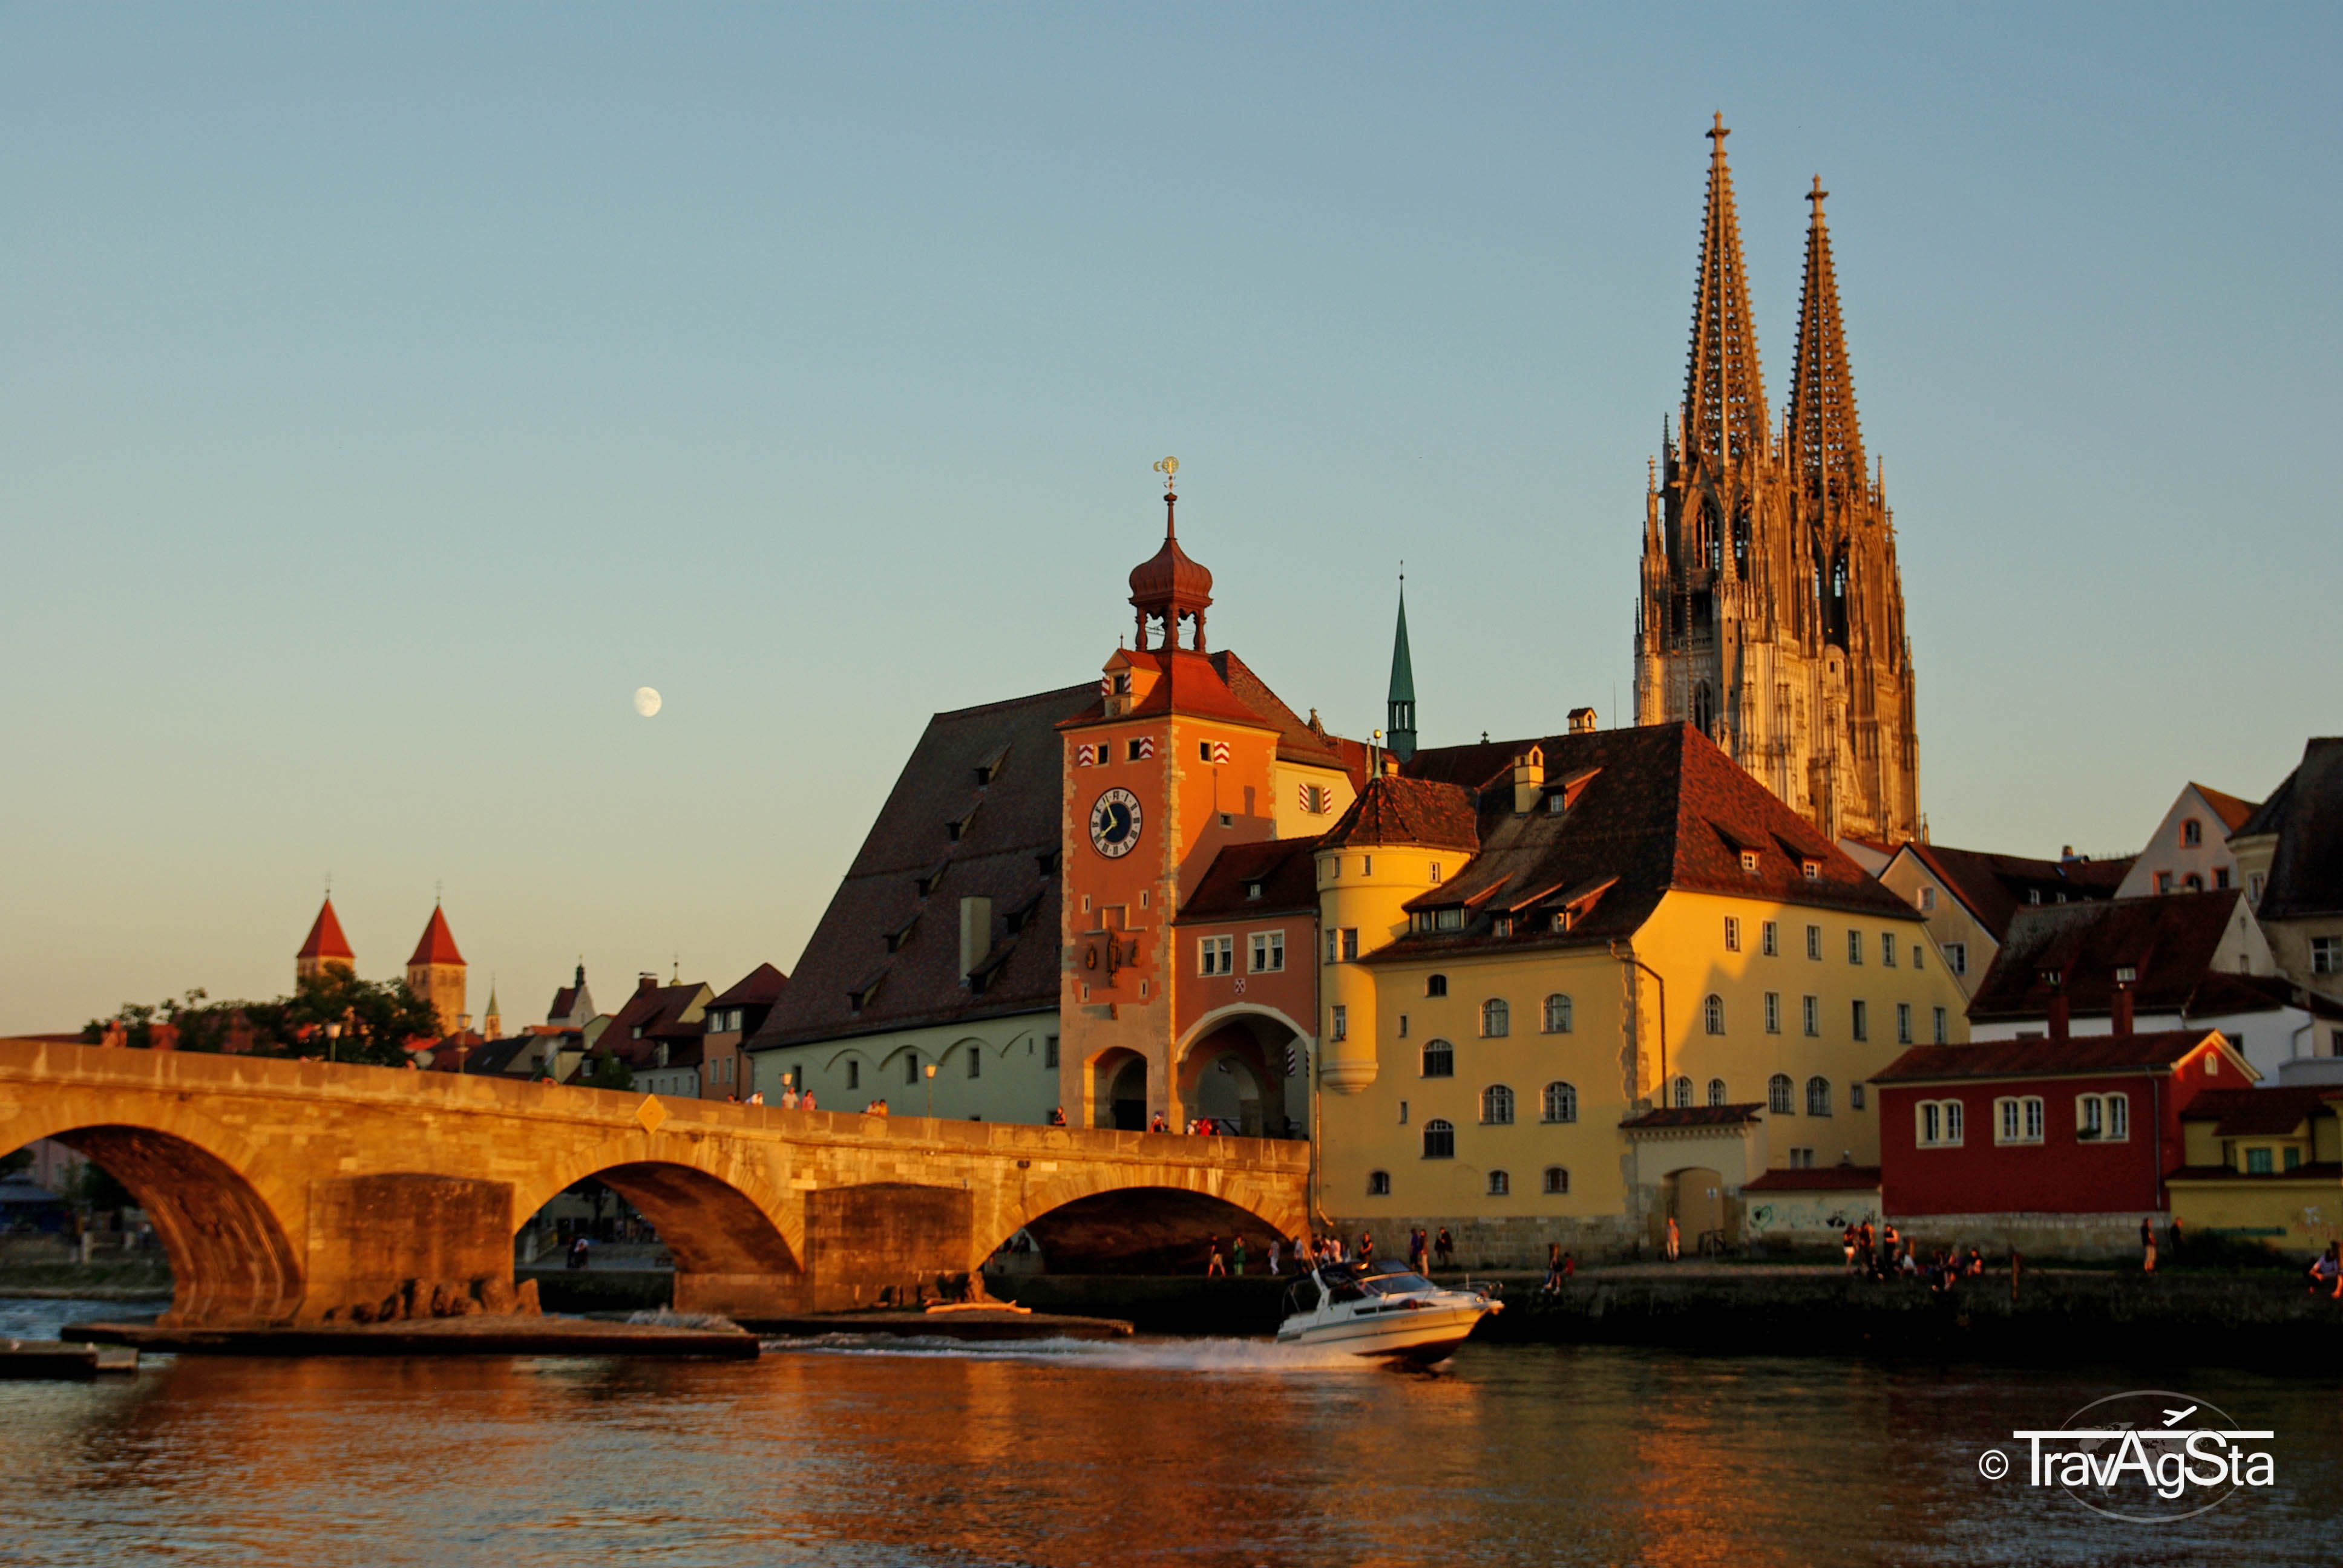 Regensburg – Sightseeing in Italy's most northern city!